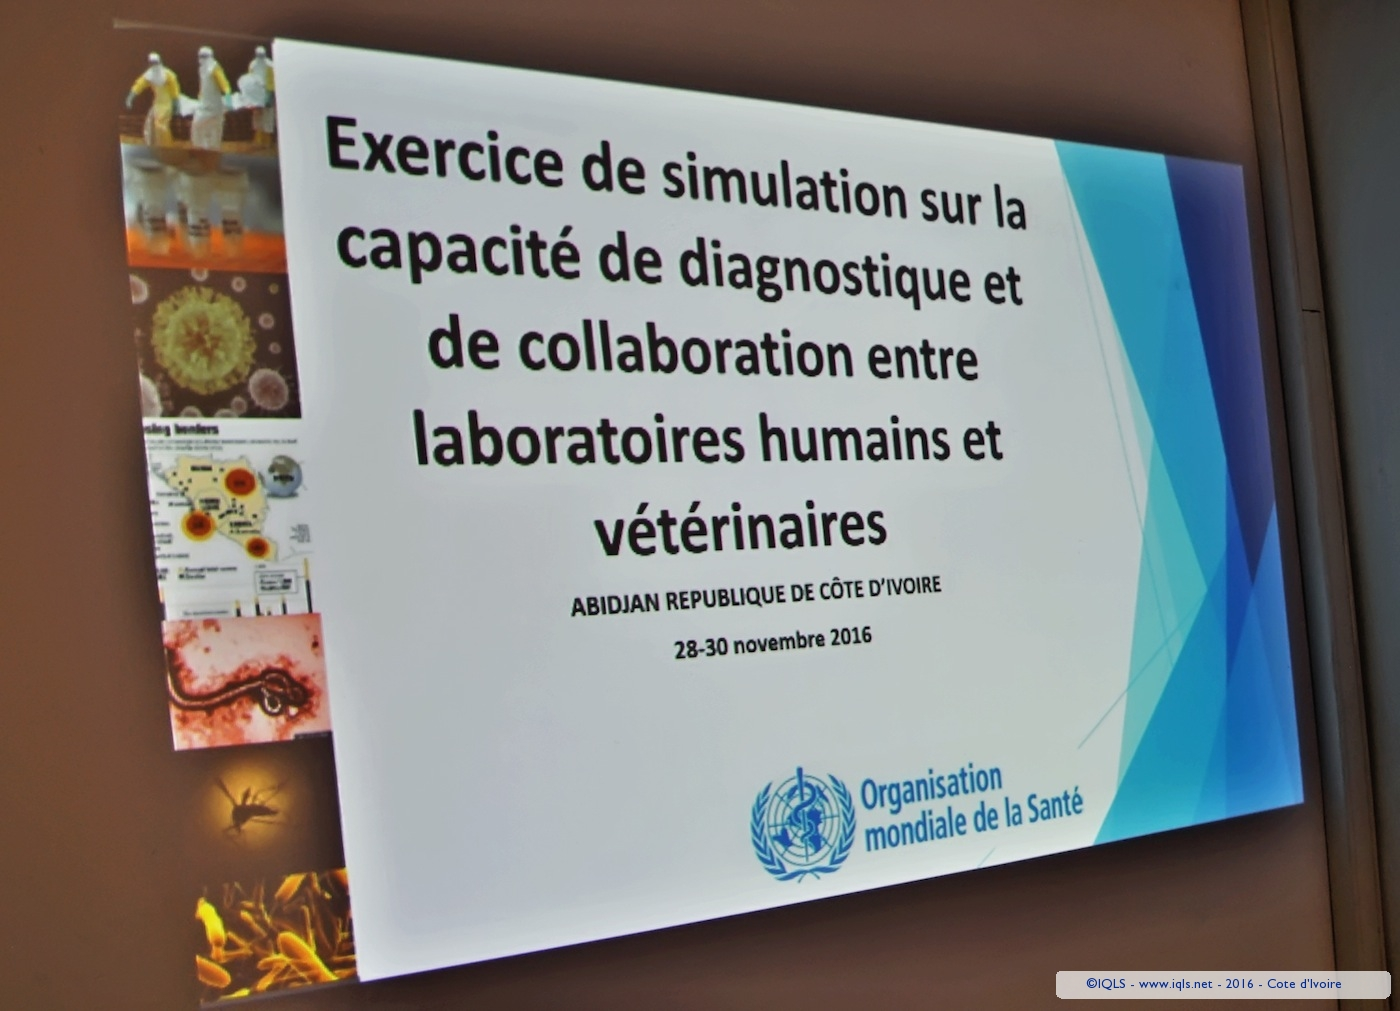 Simulation exercises to assess the functionality of the public health laboratory sector, Ghana and Côte d'Ivoire - 2016 - Cote d'Ivoire